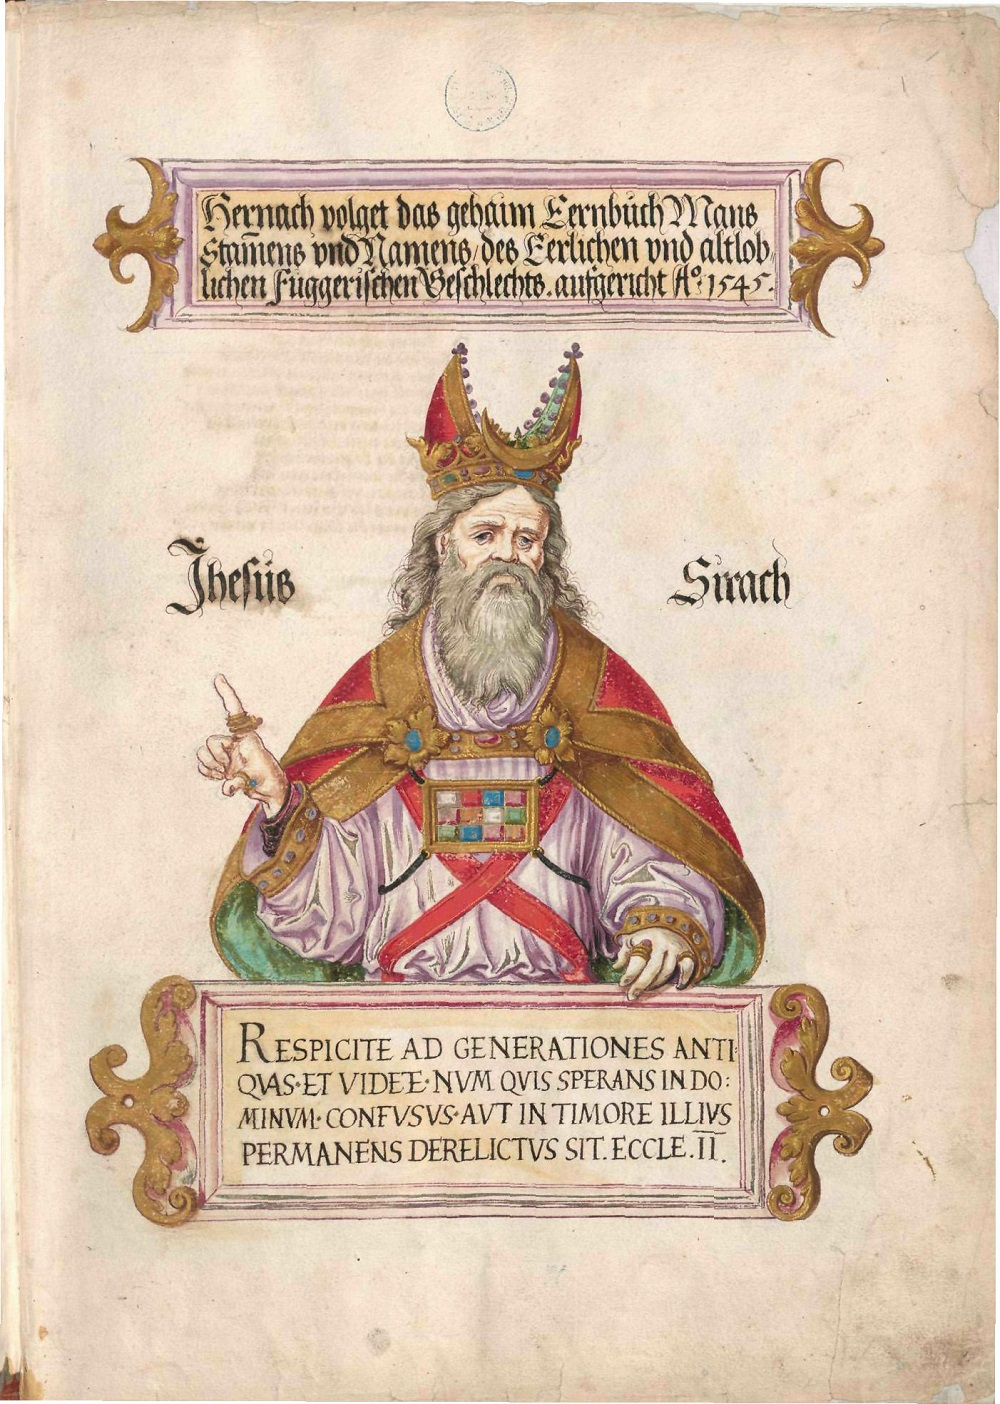 Ben Sira, from the Fugger Honorary     Illustration from the workshop of Jörg Breu, c.1545-49       Image Source